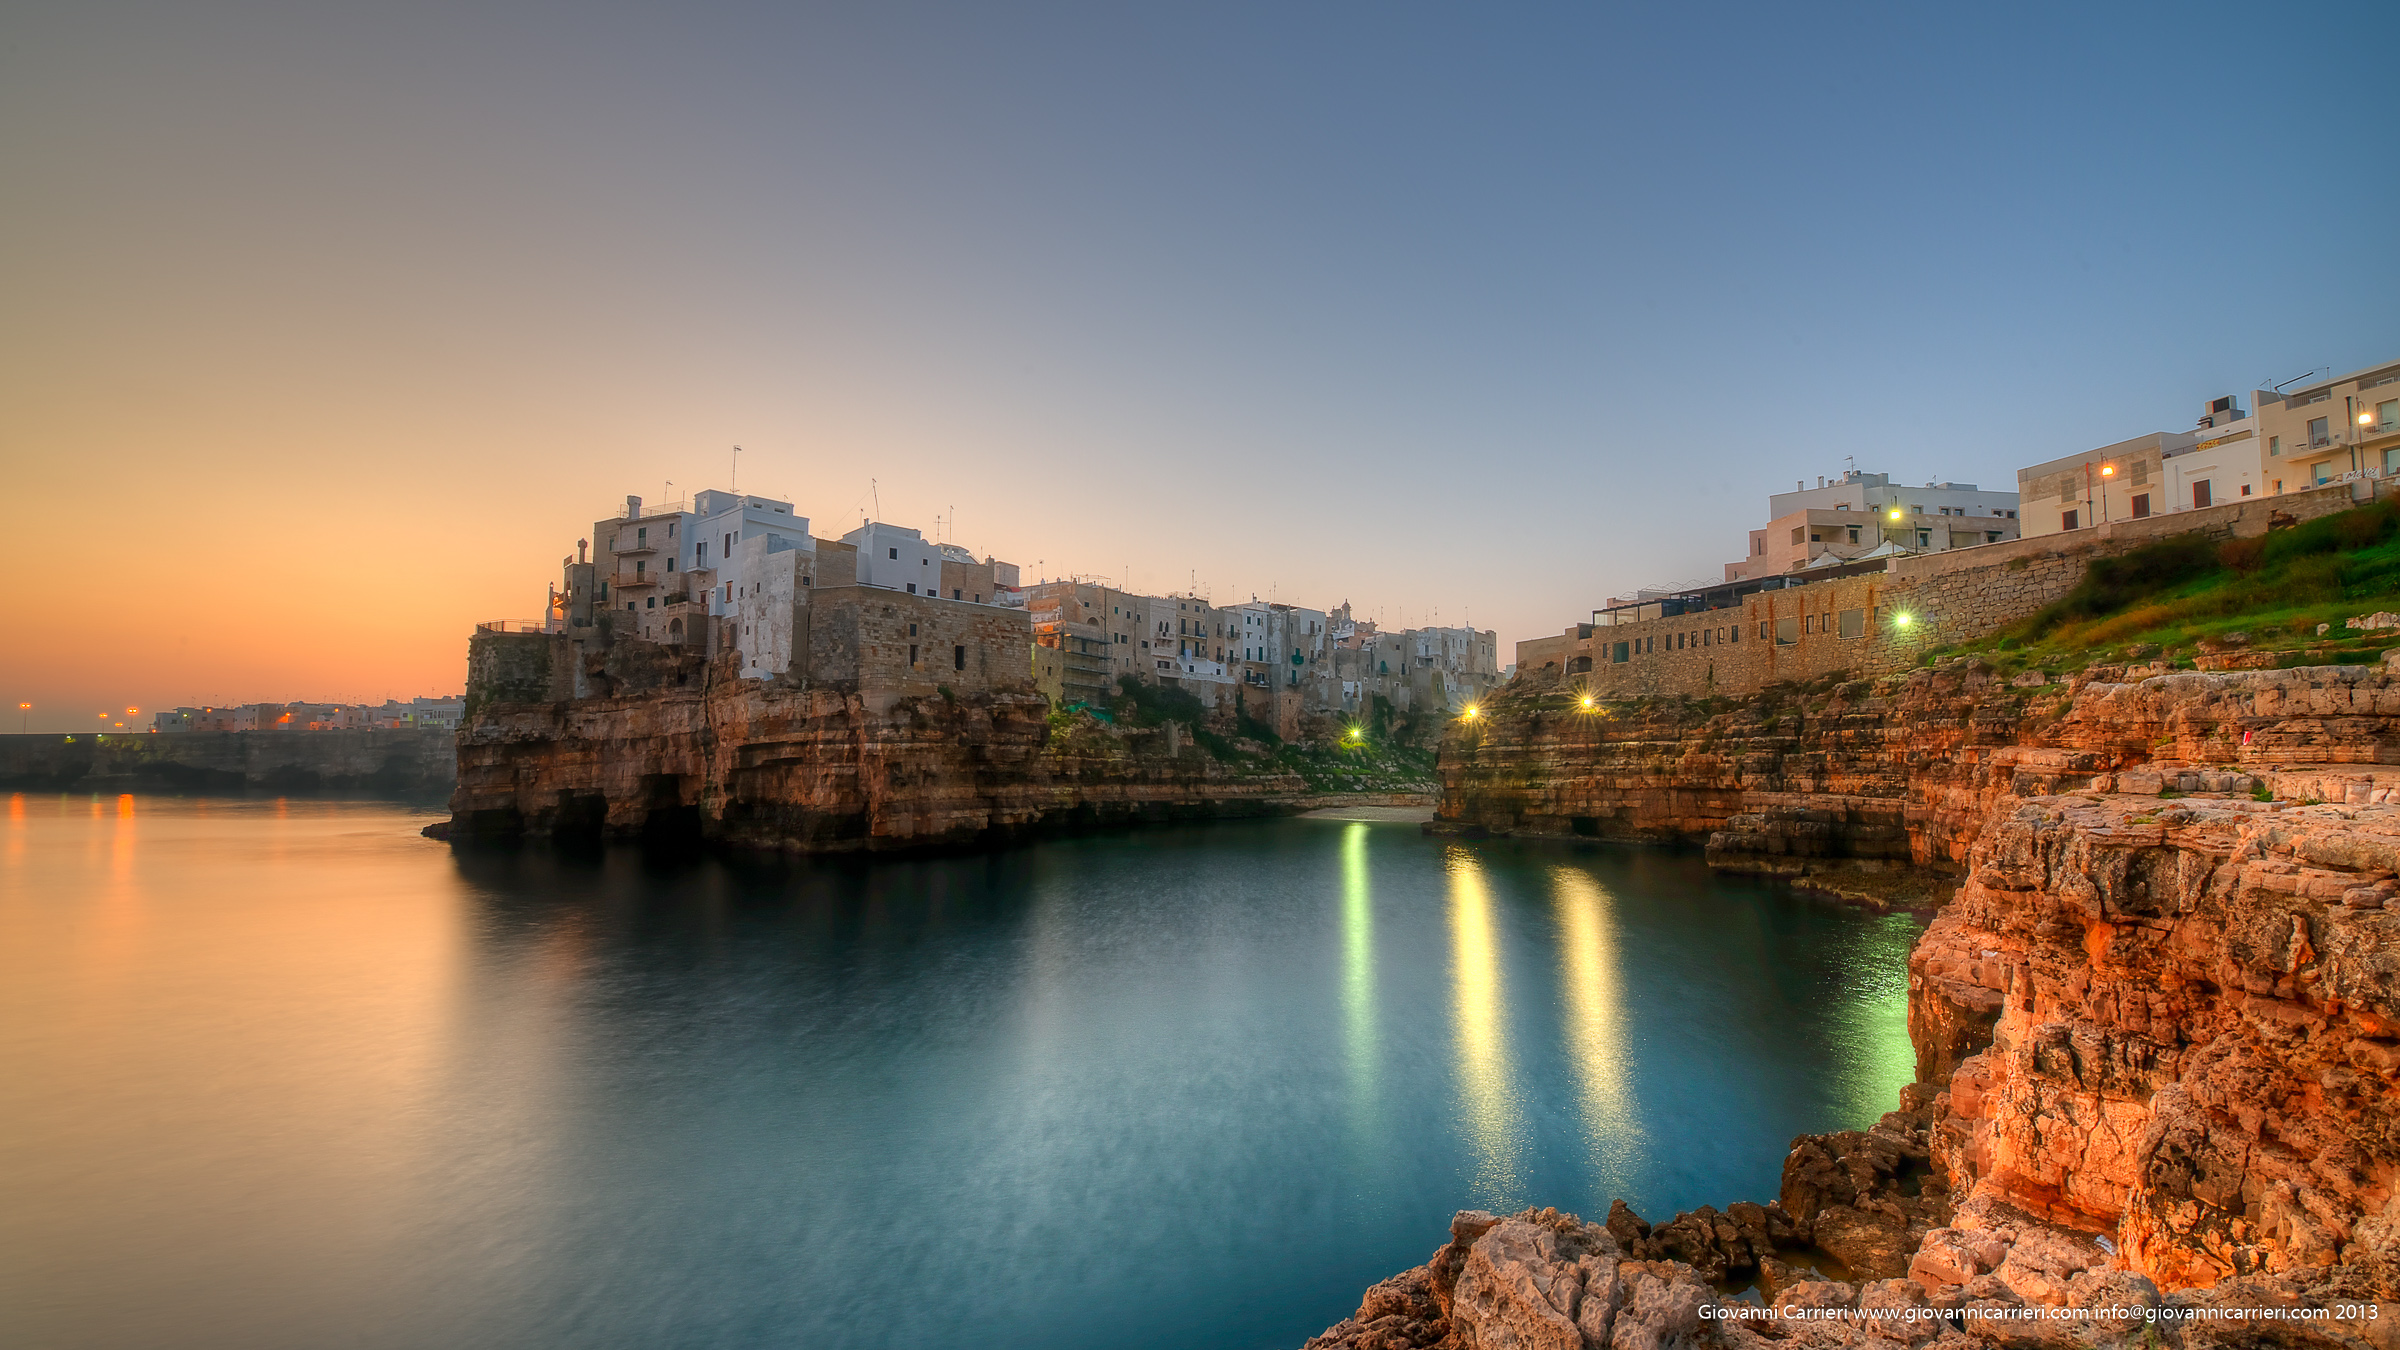 Photographs of Polignano a Mare